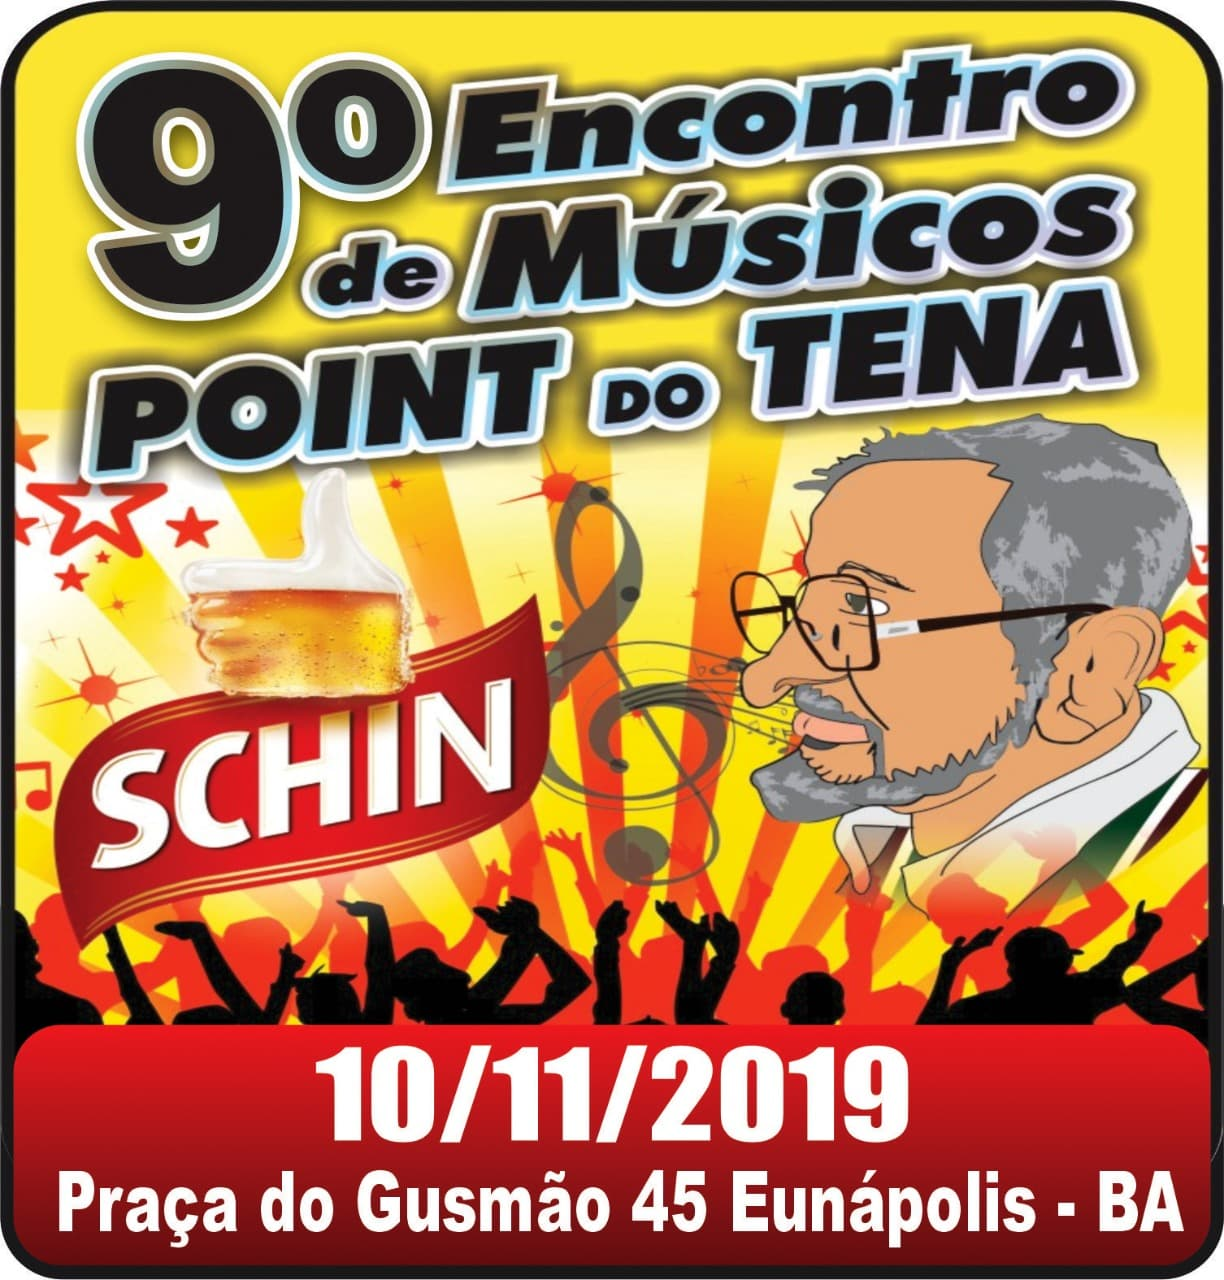 9ª Encontro de Músicos Point do Tena - Praça do Gusmão - Eunápolis 1